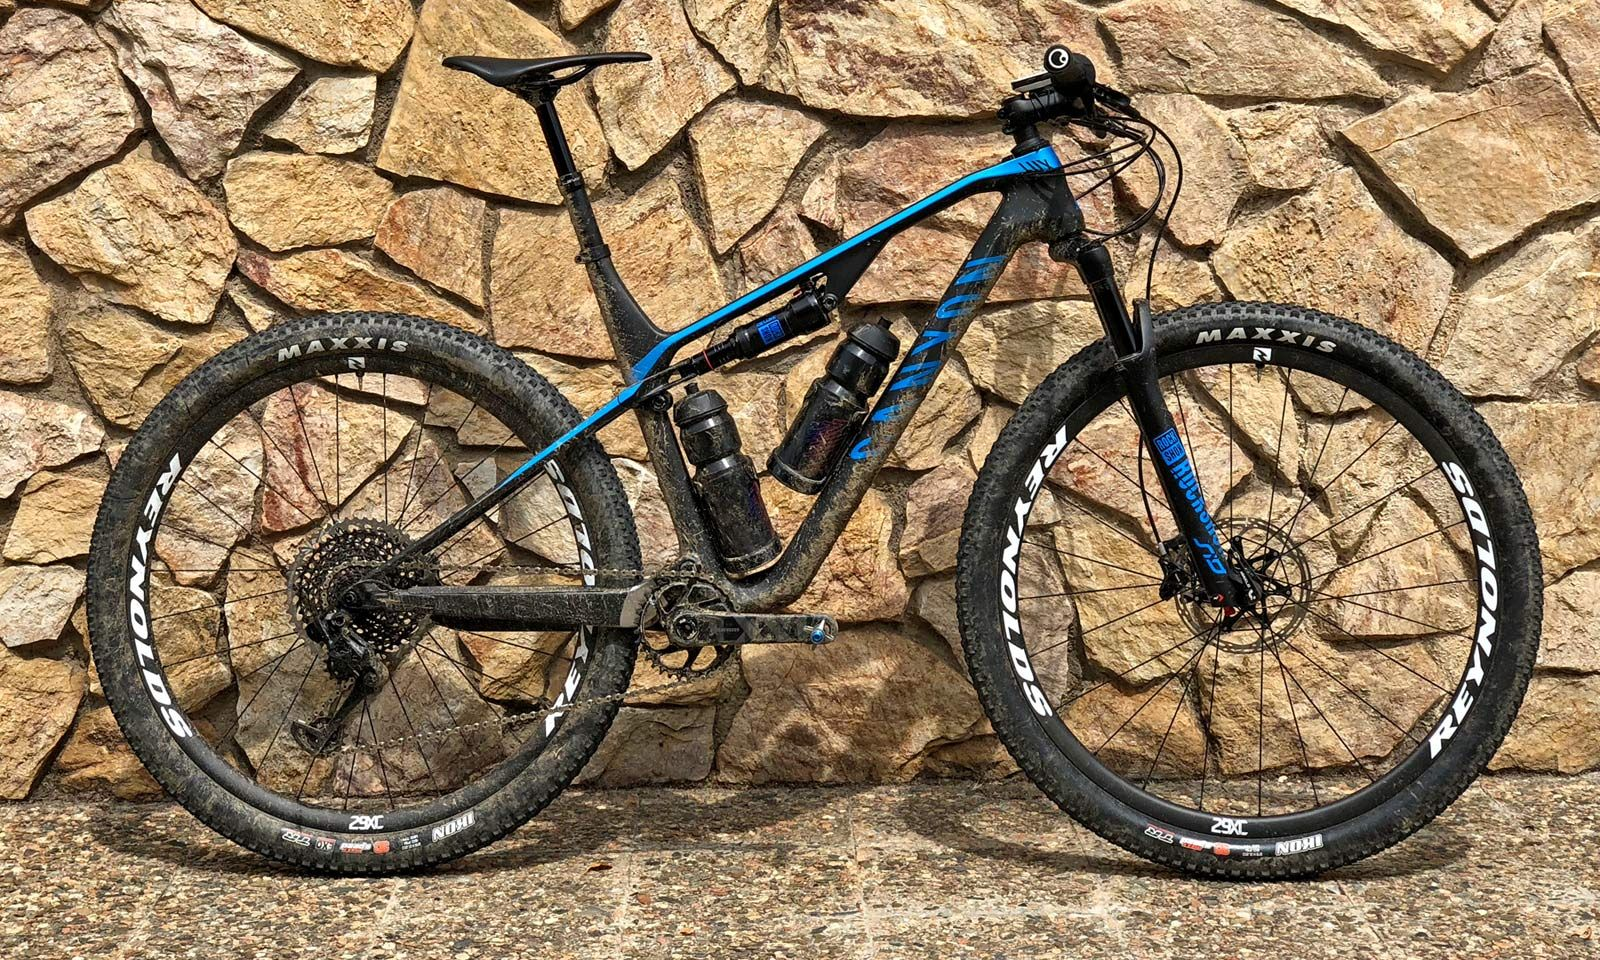 2019 Canyon Lux Reshapes Xc Xcm Race Mountain Bike With All New